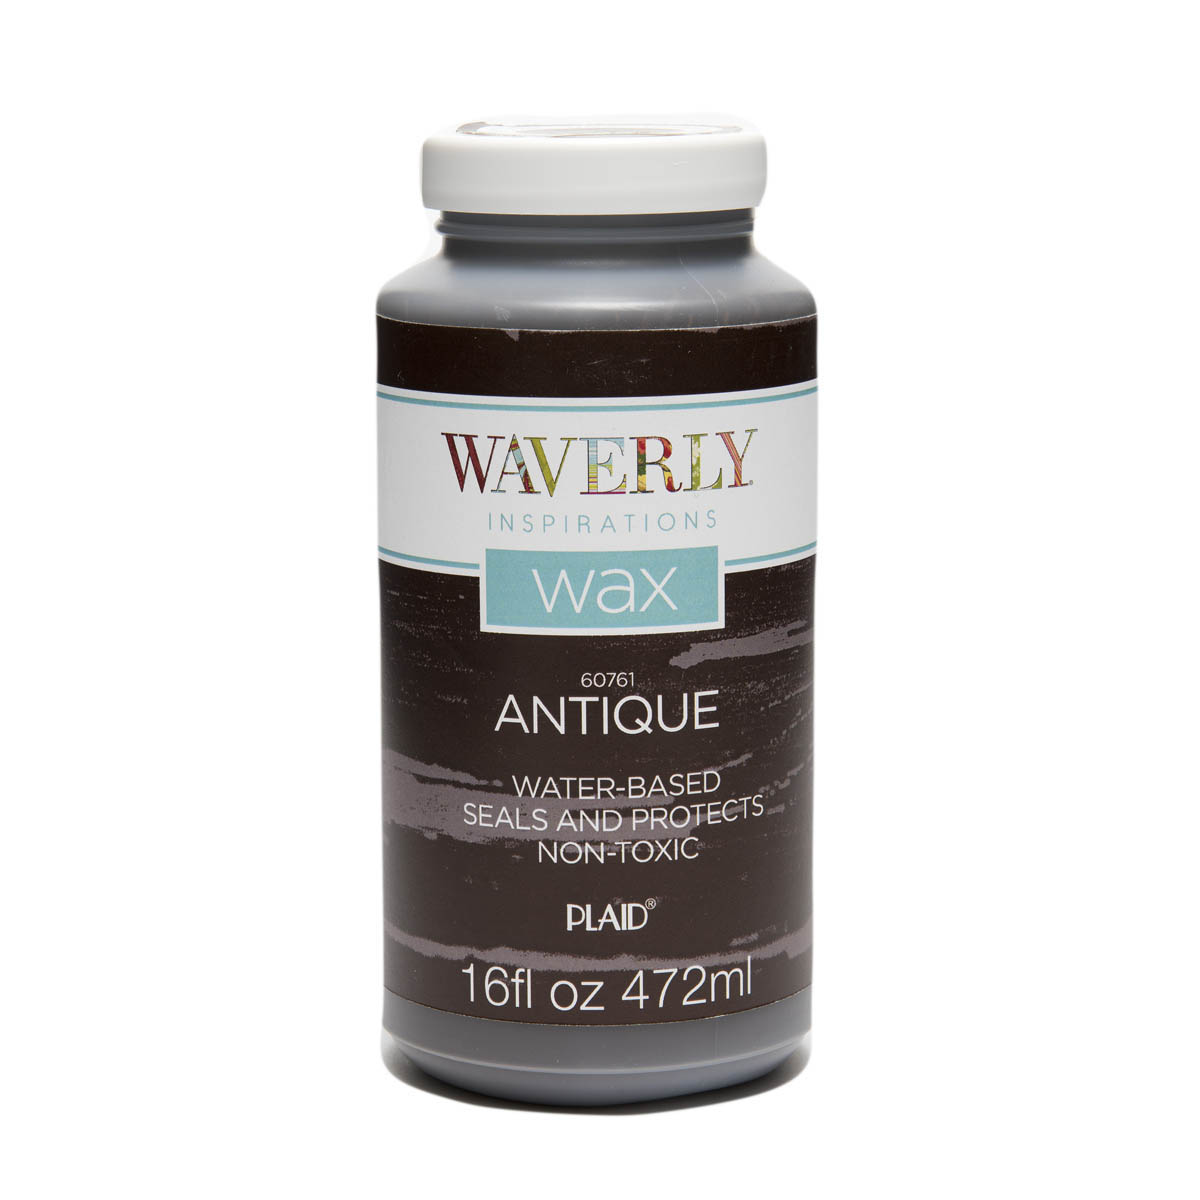 Waverly ® Inspirations Wax - Antique, 16 oz.